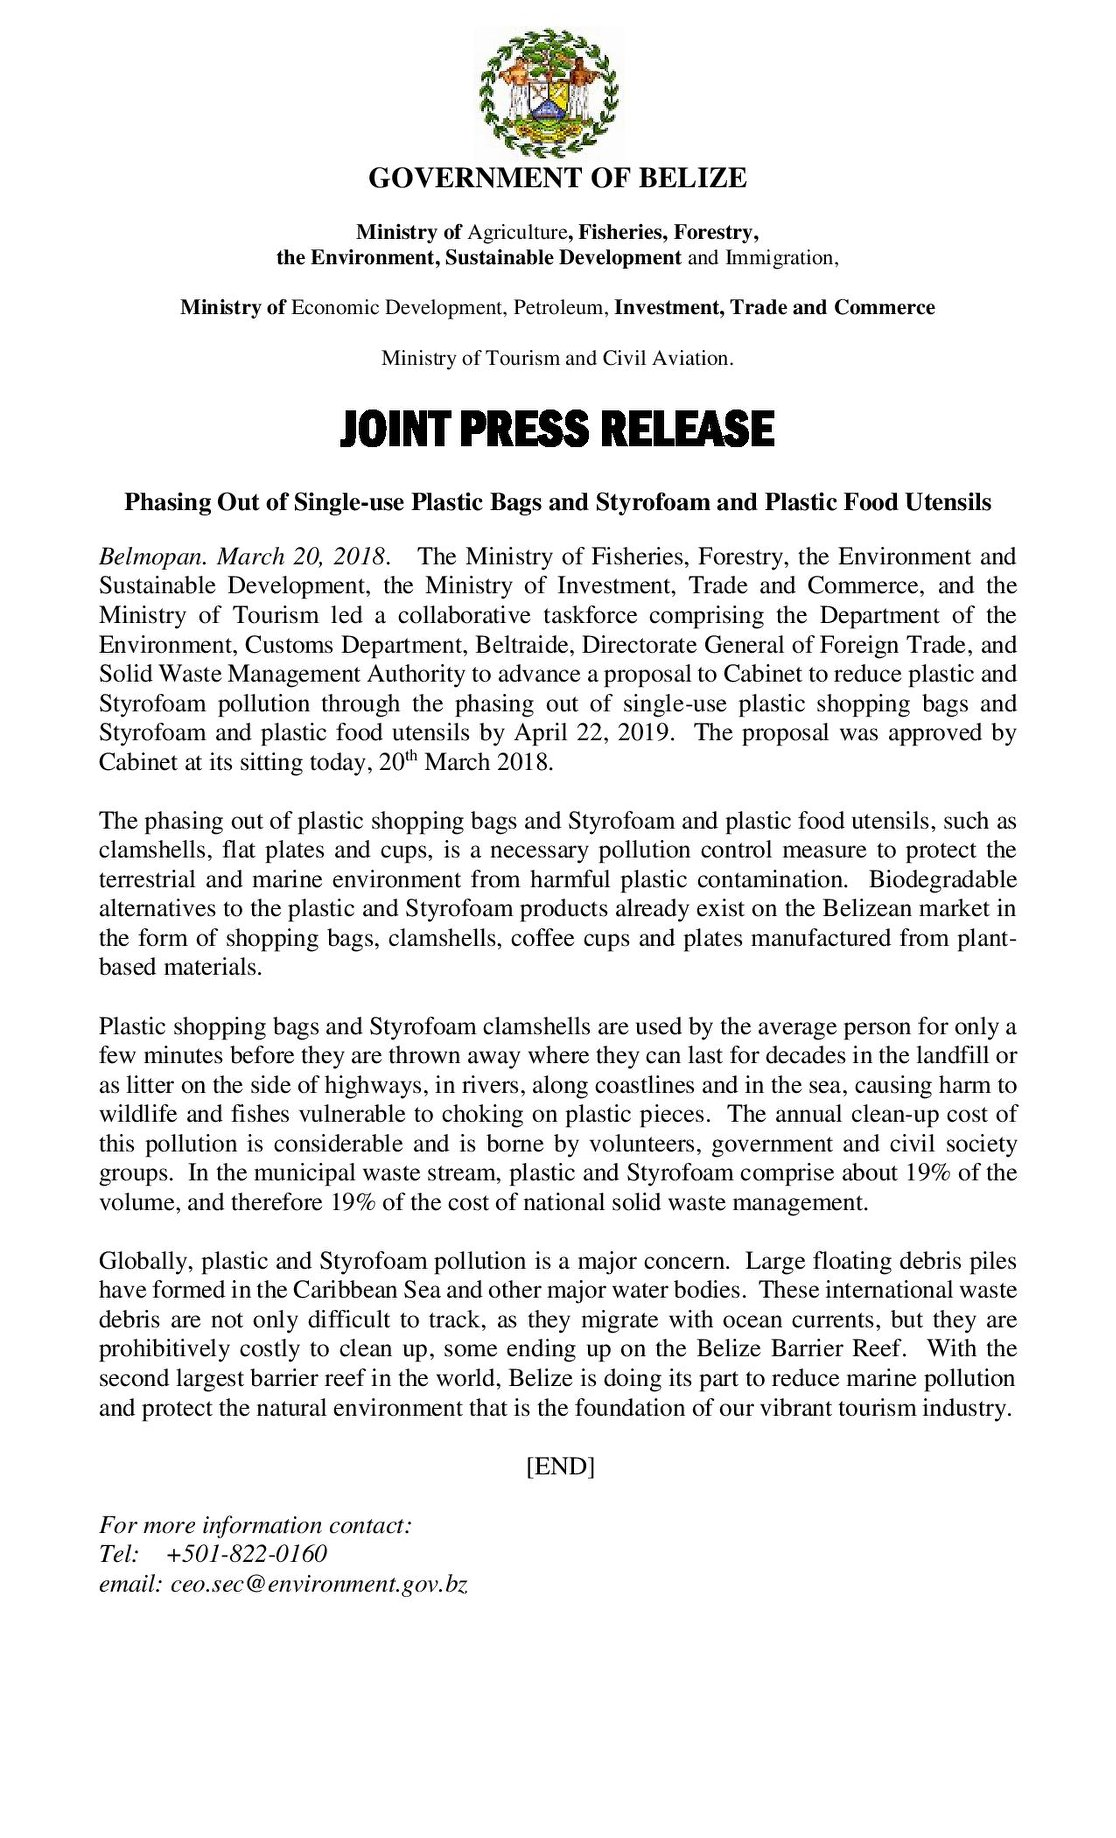 Belize styrofoam ban press release 2018